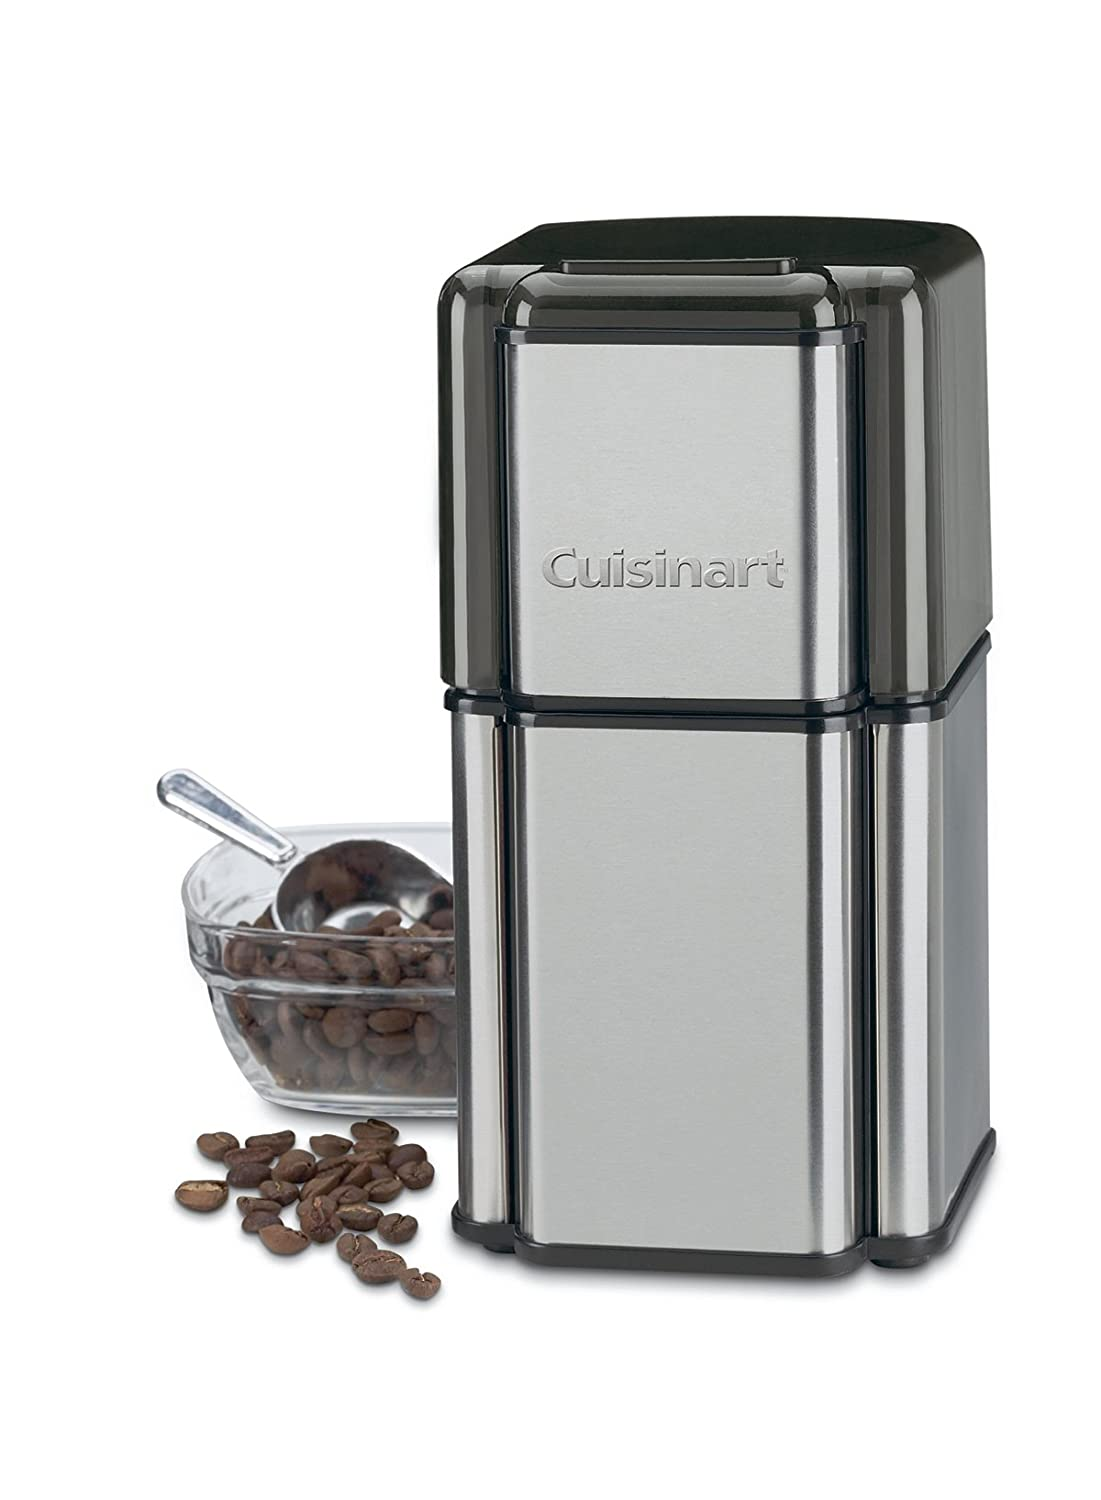 Cuisinart Coffee Maker With Grinder Leaking : Cuisinart DCG-12BC Grind Central Coffee Grinder , New, Free Shipping 86279004567 eBay